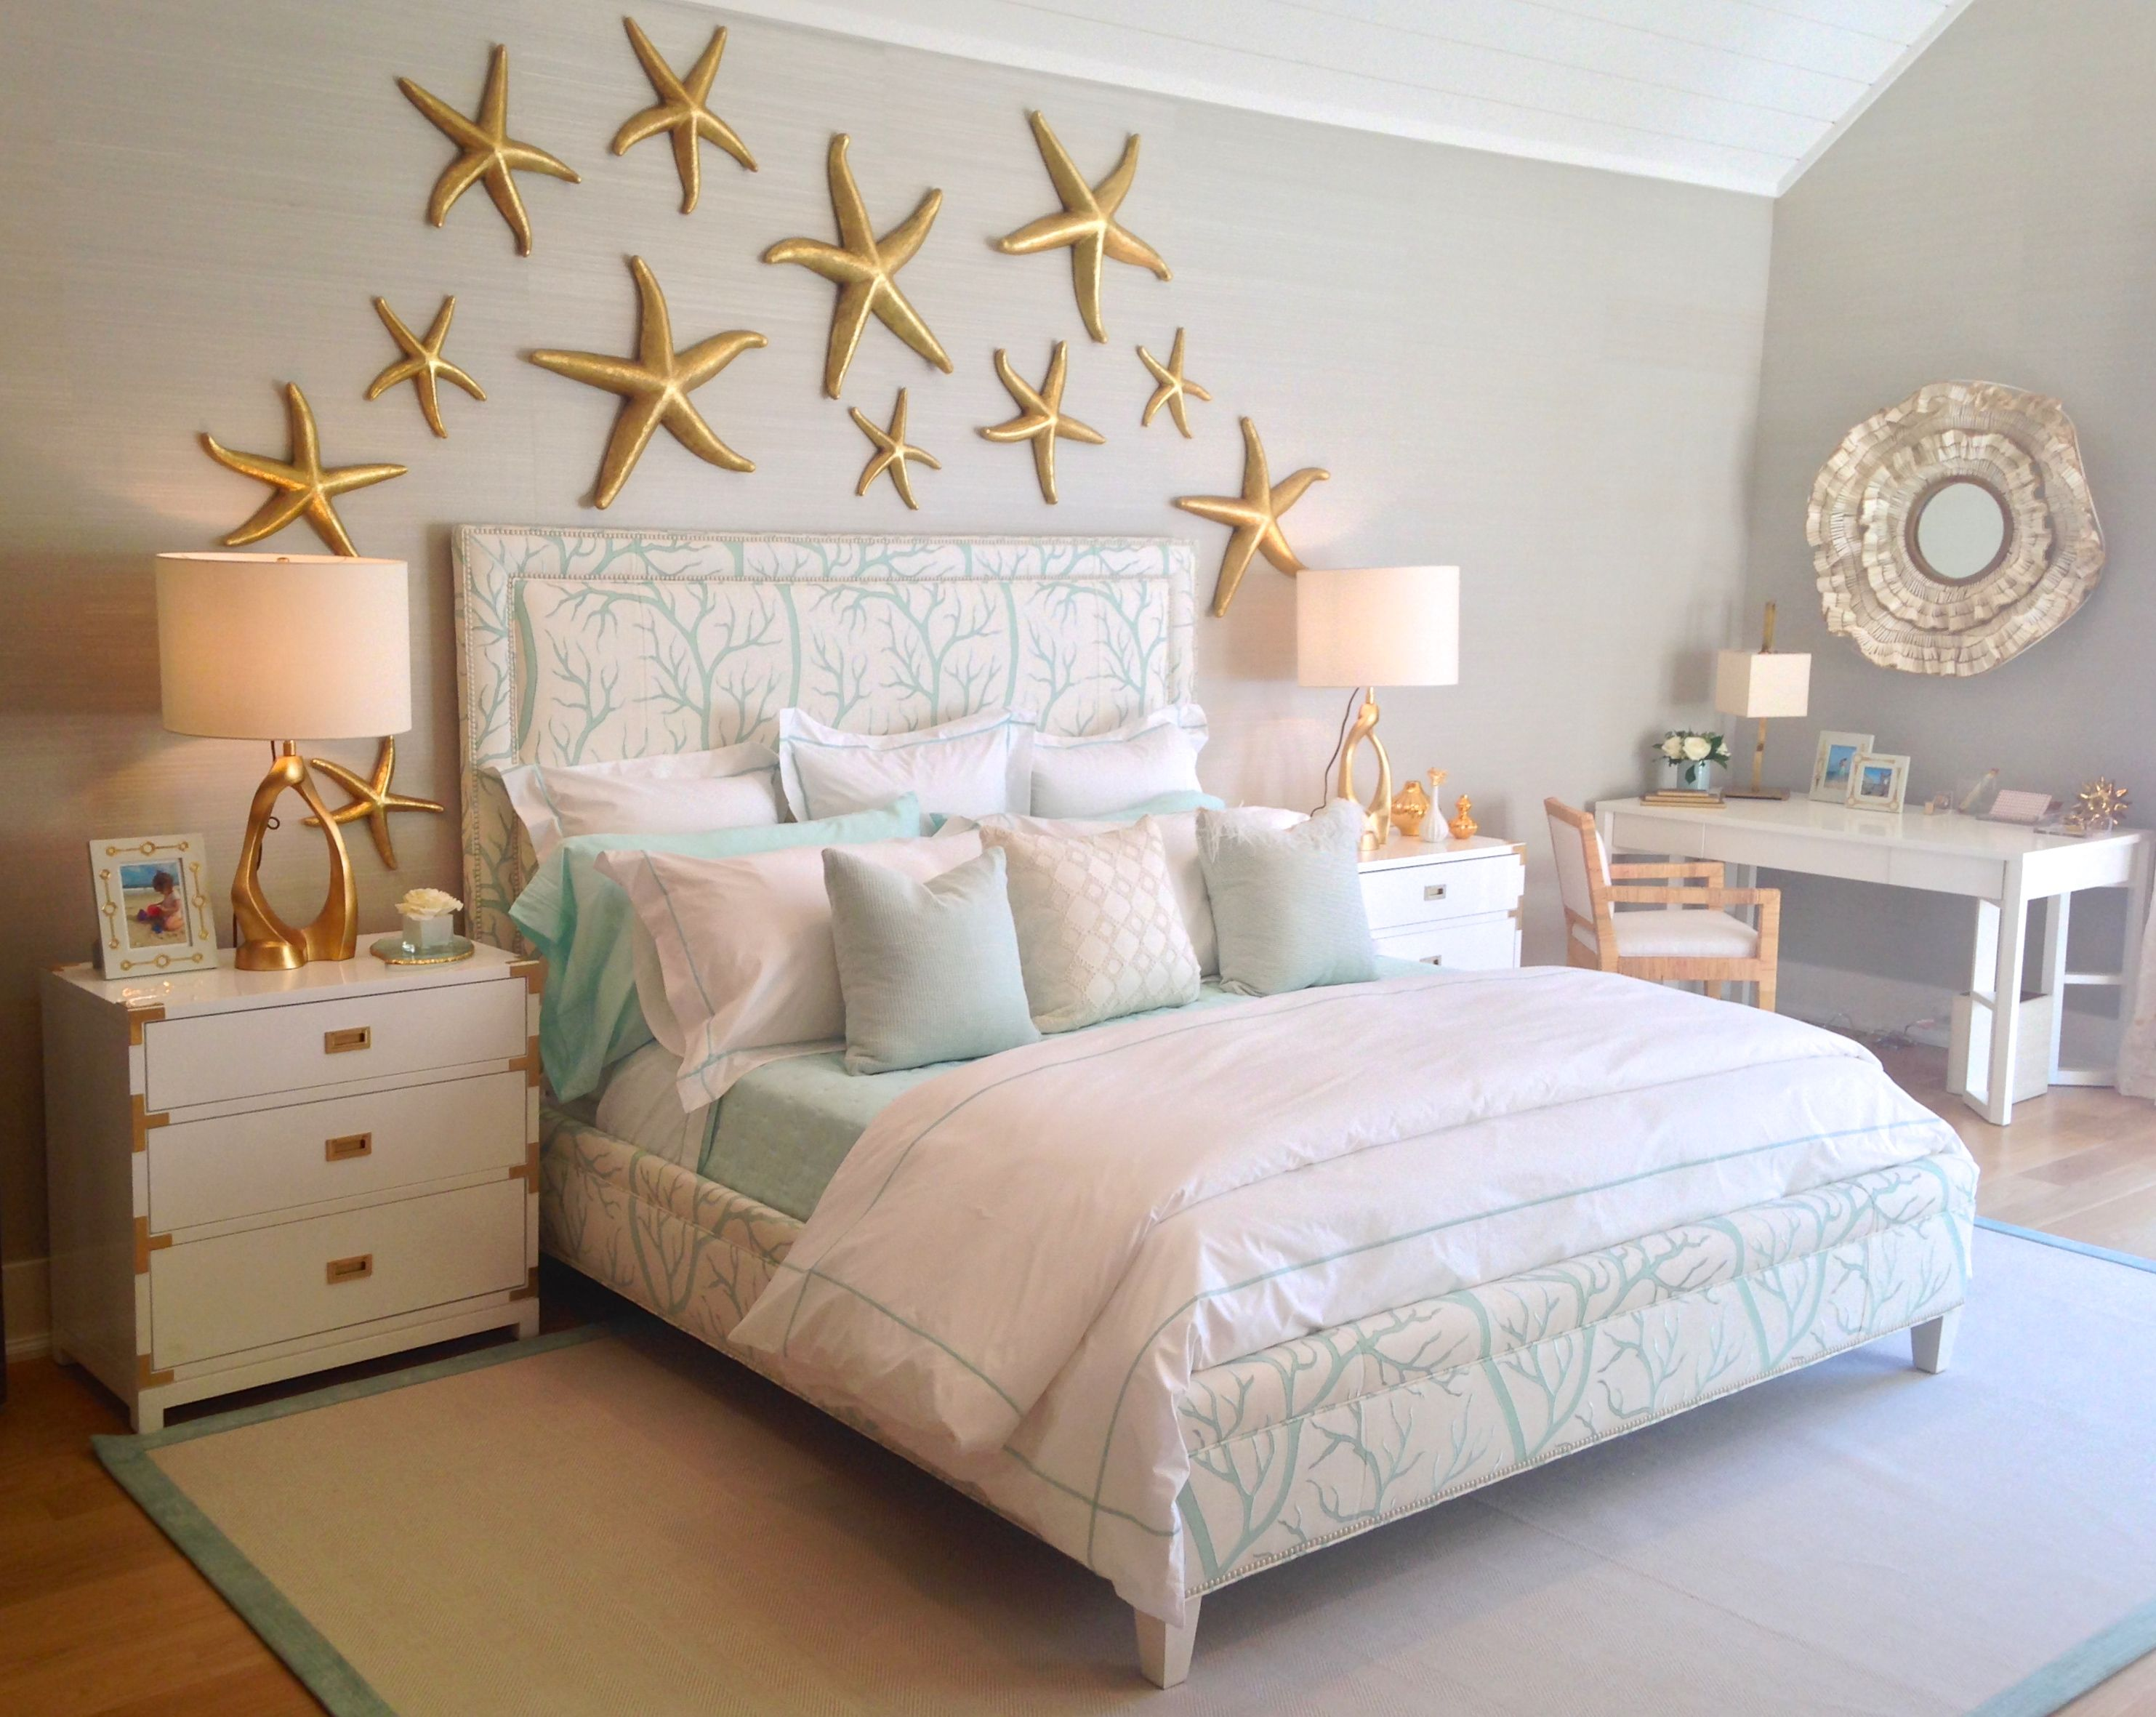 15 Best Images About Turquoise Room Decorations | Coral print ...